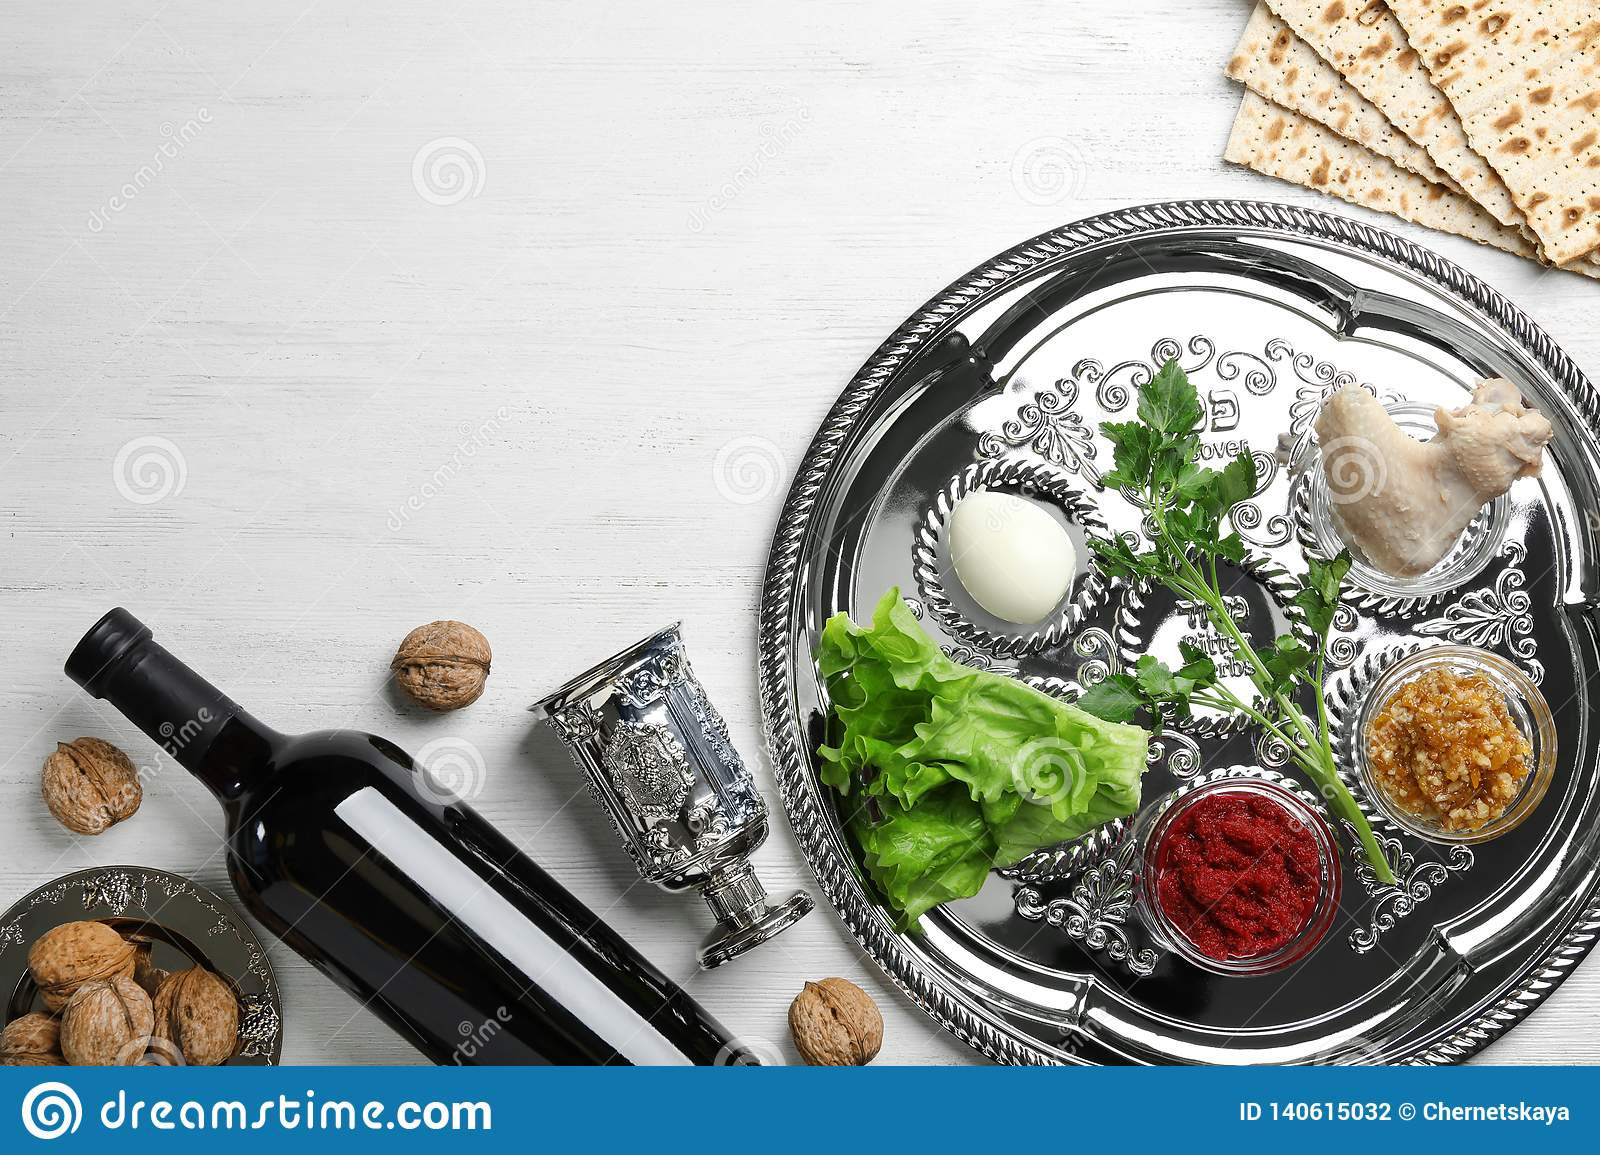 Flat lay composition with symbolic Passover Pesach items and meal on wooden background